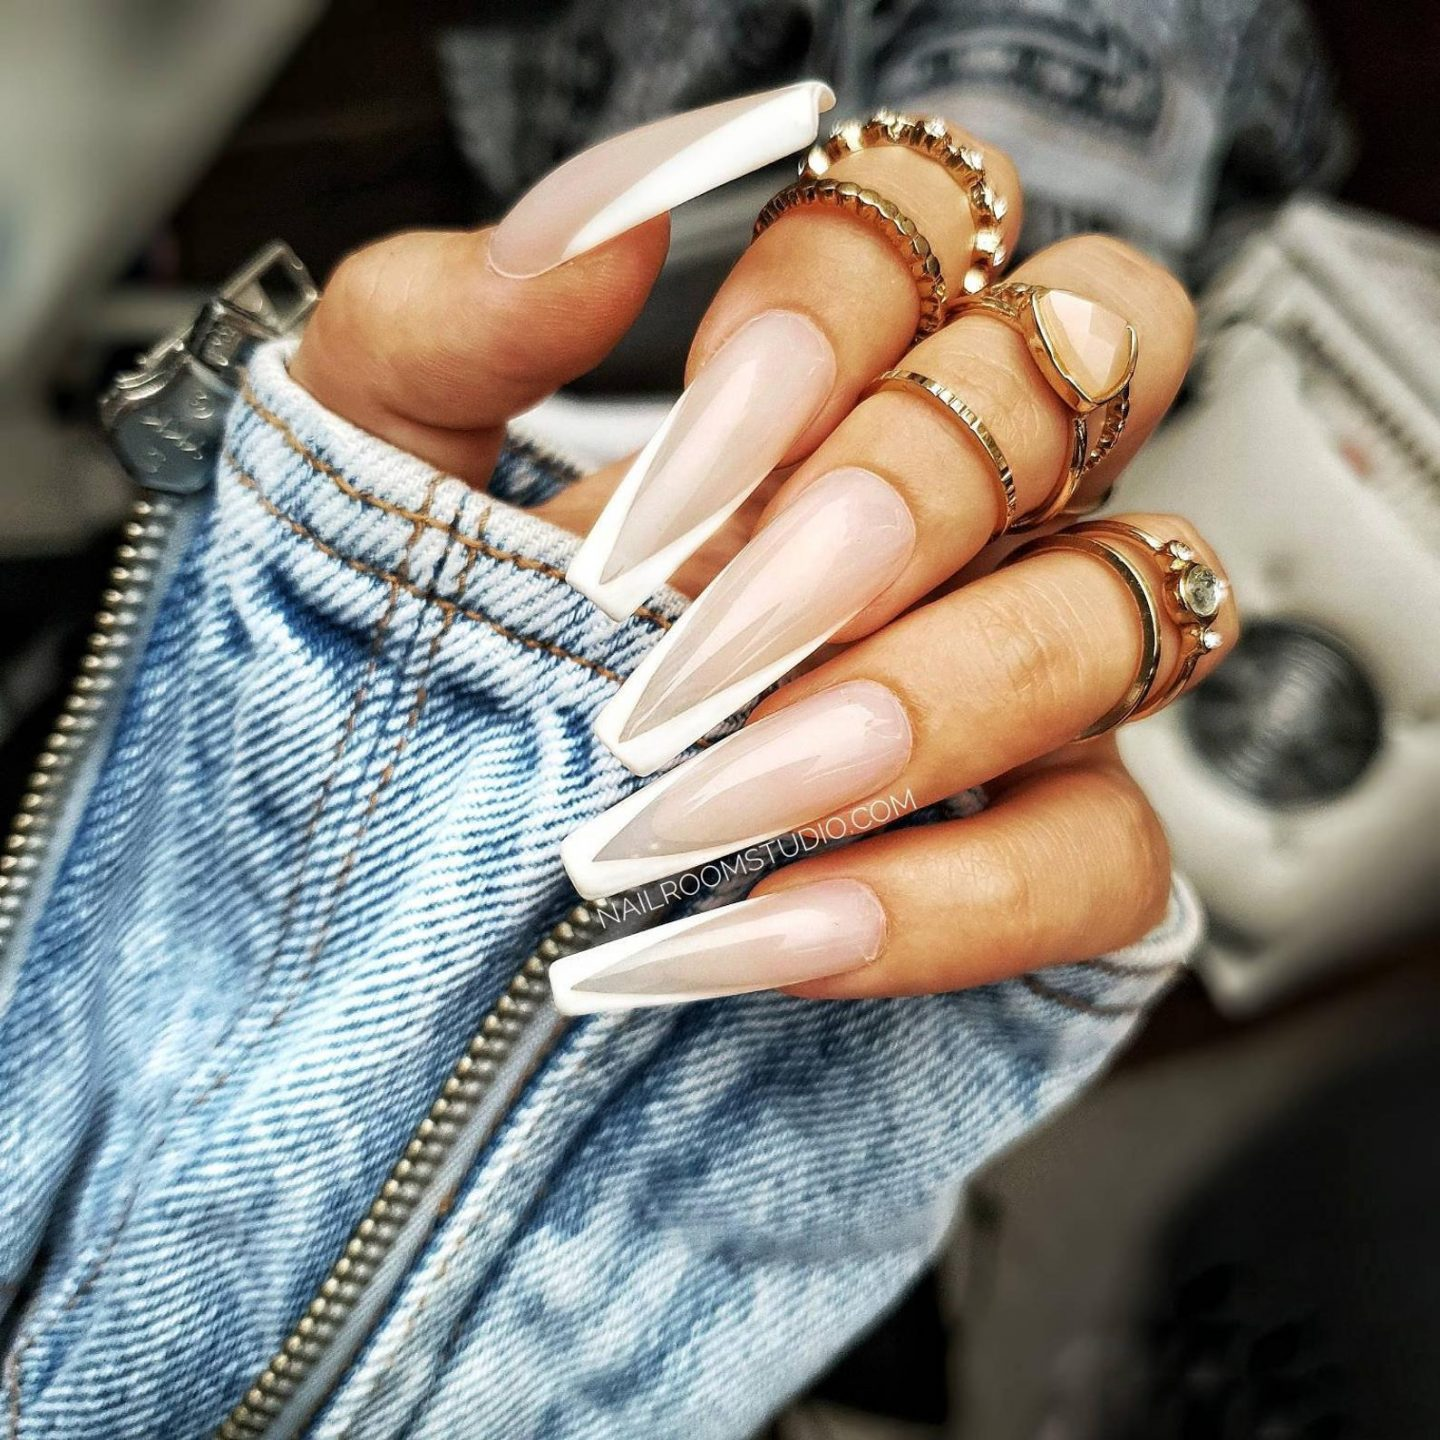 Long white French tip coffin nails